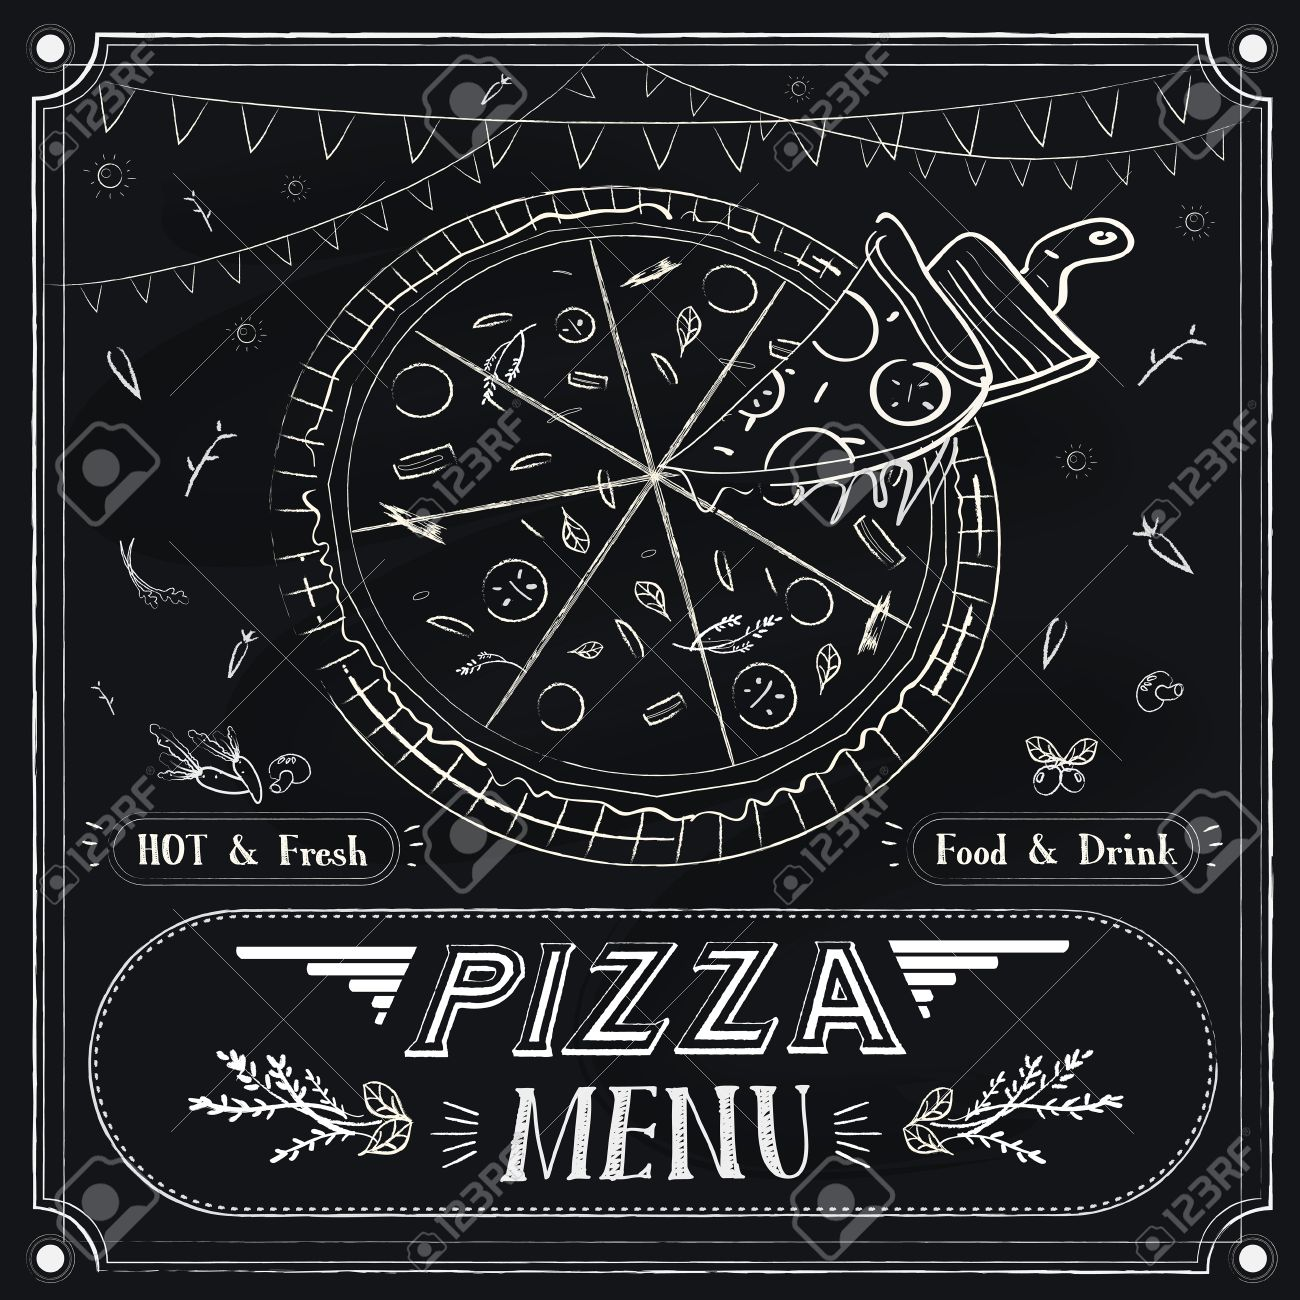 Creative Pizza Menu Design Over Black Background Stock Vector